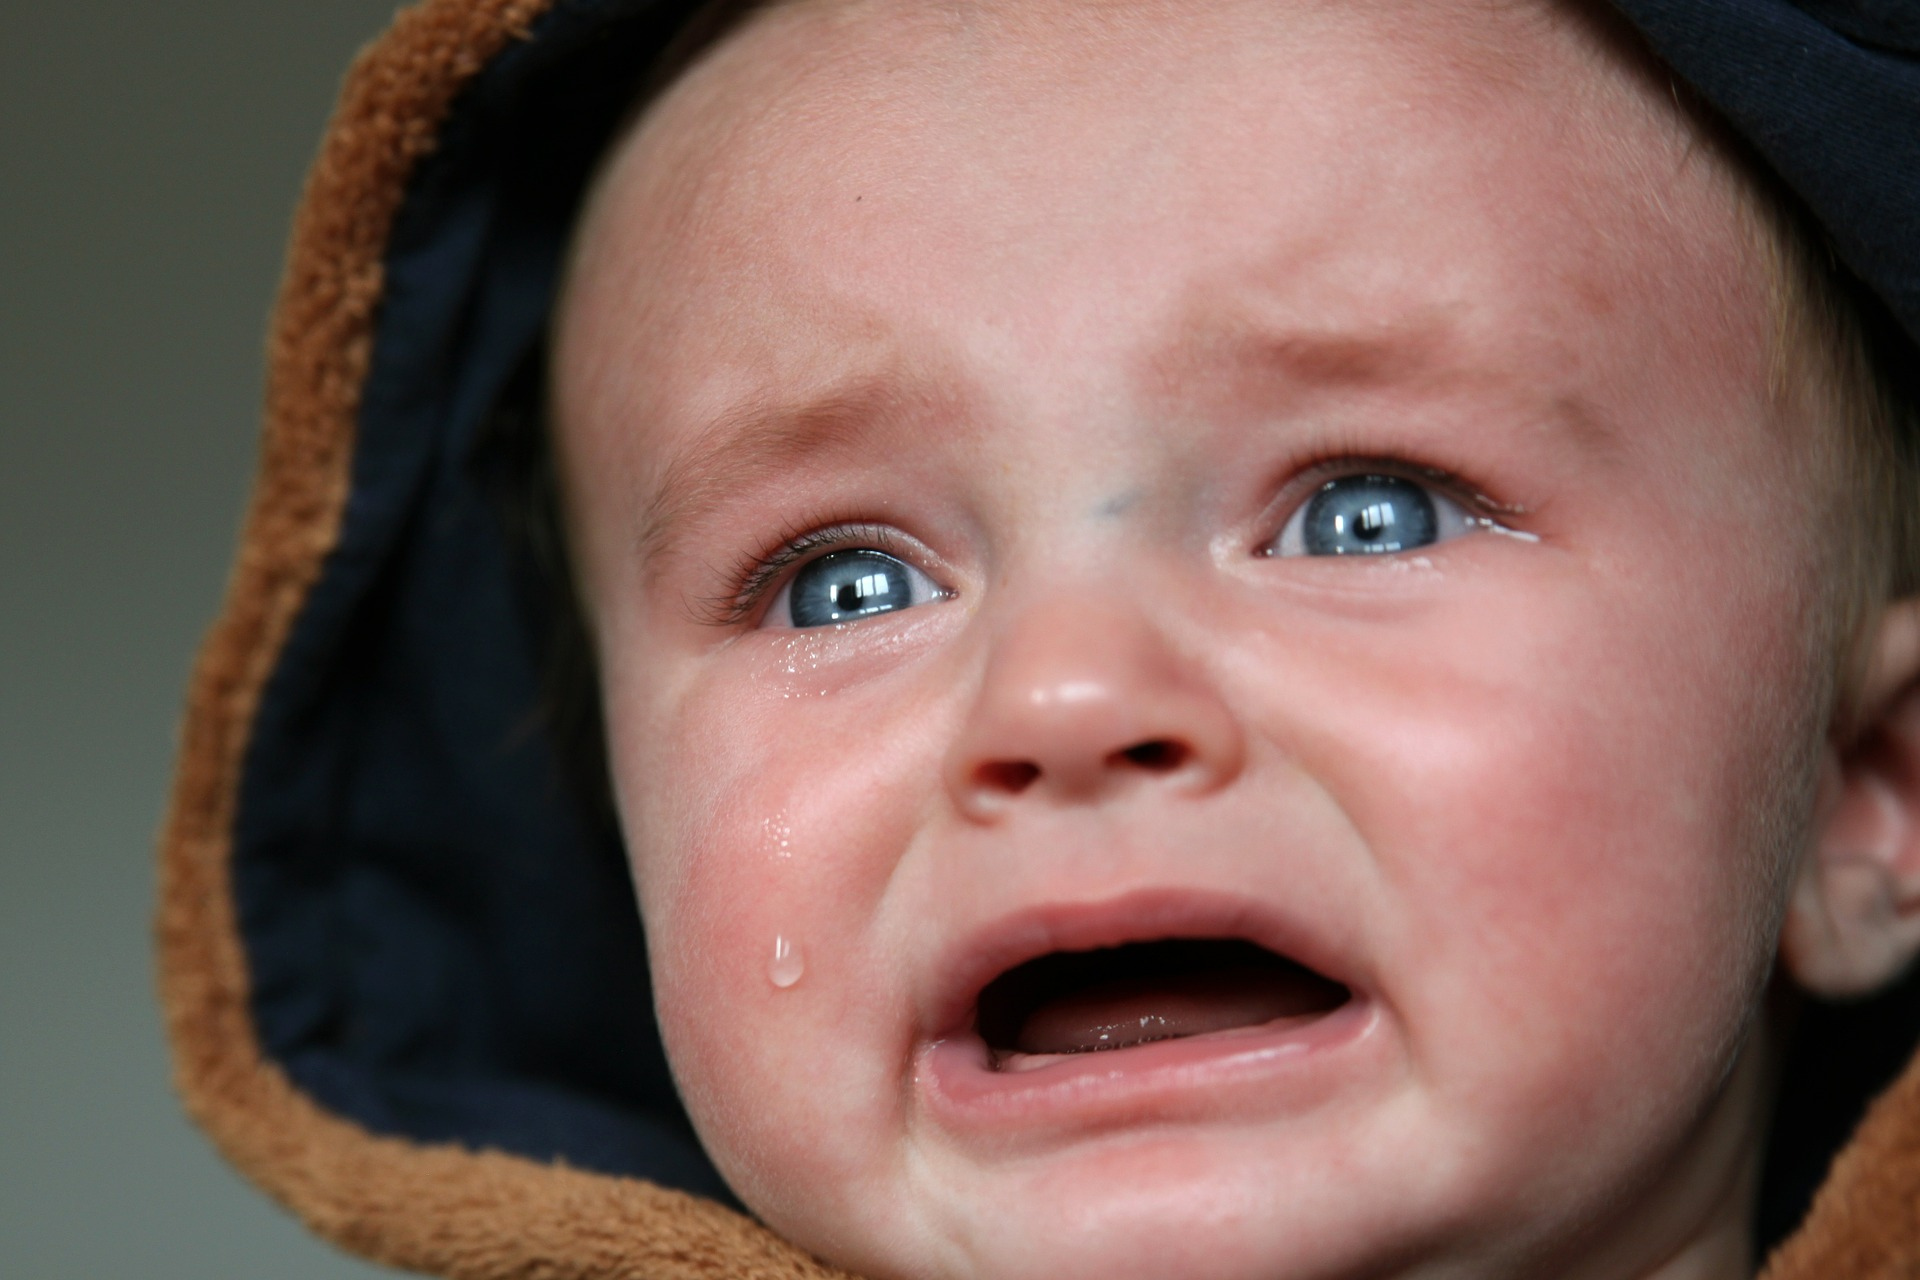 Funniest Expression of Babies That Made Me Feel Awww 6